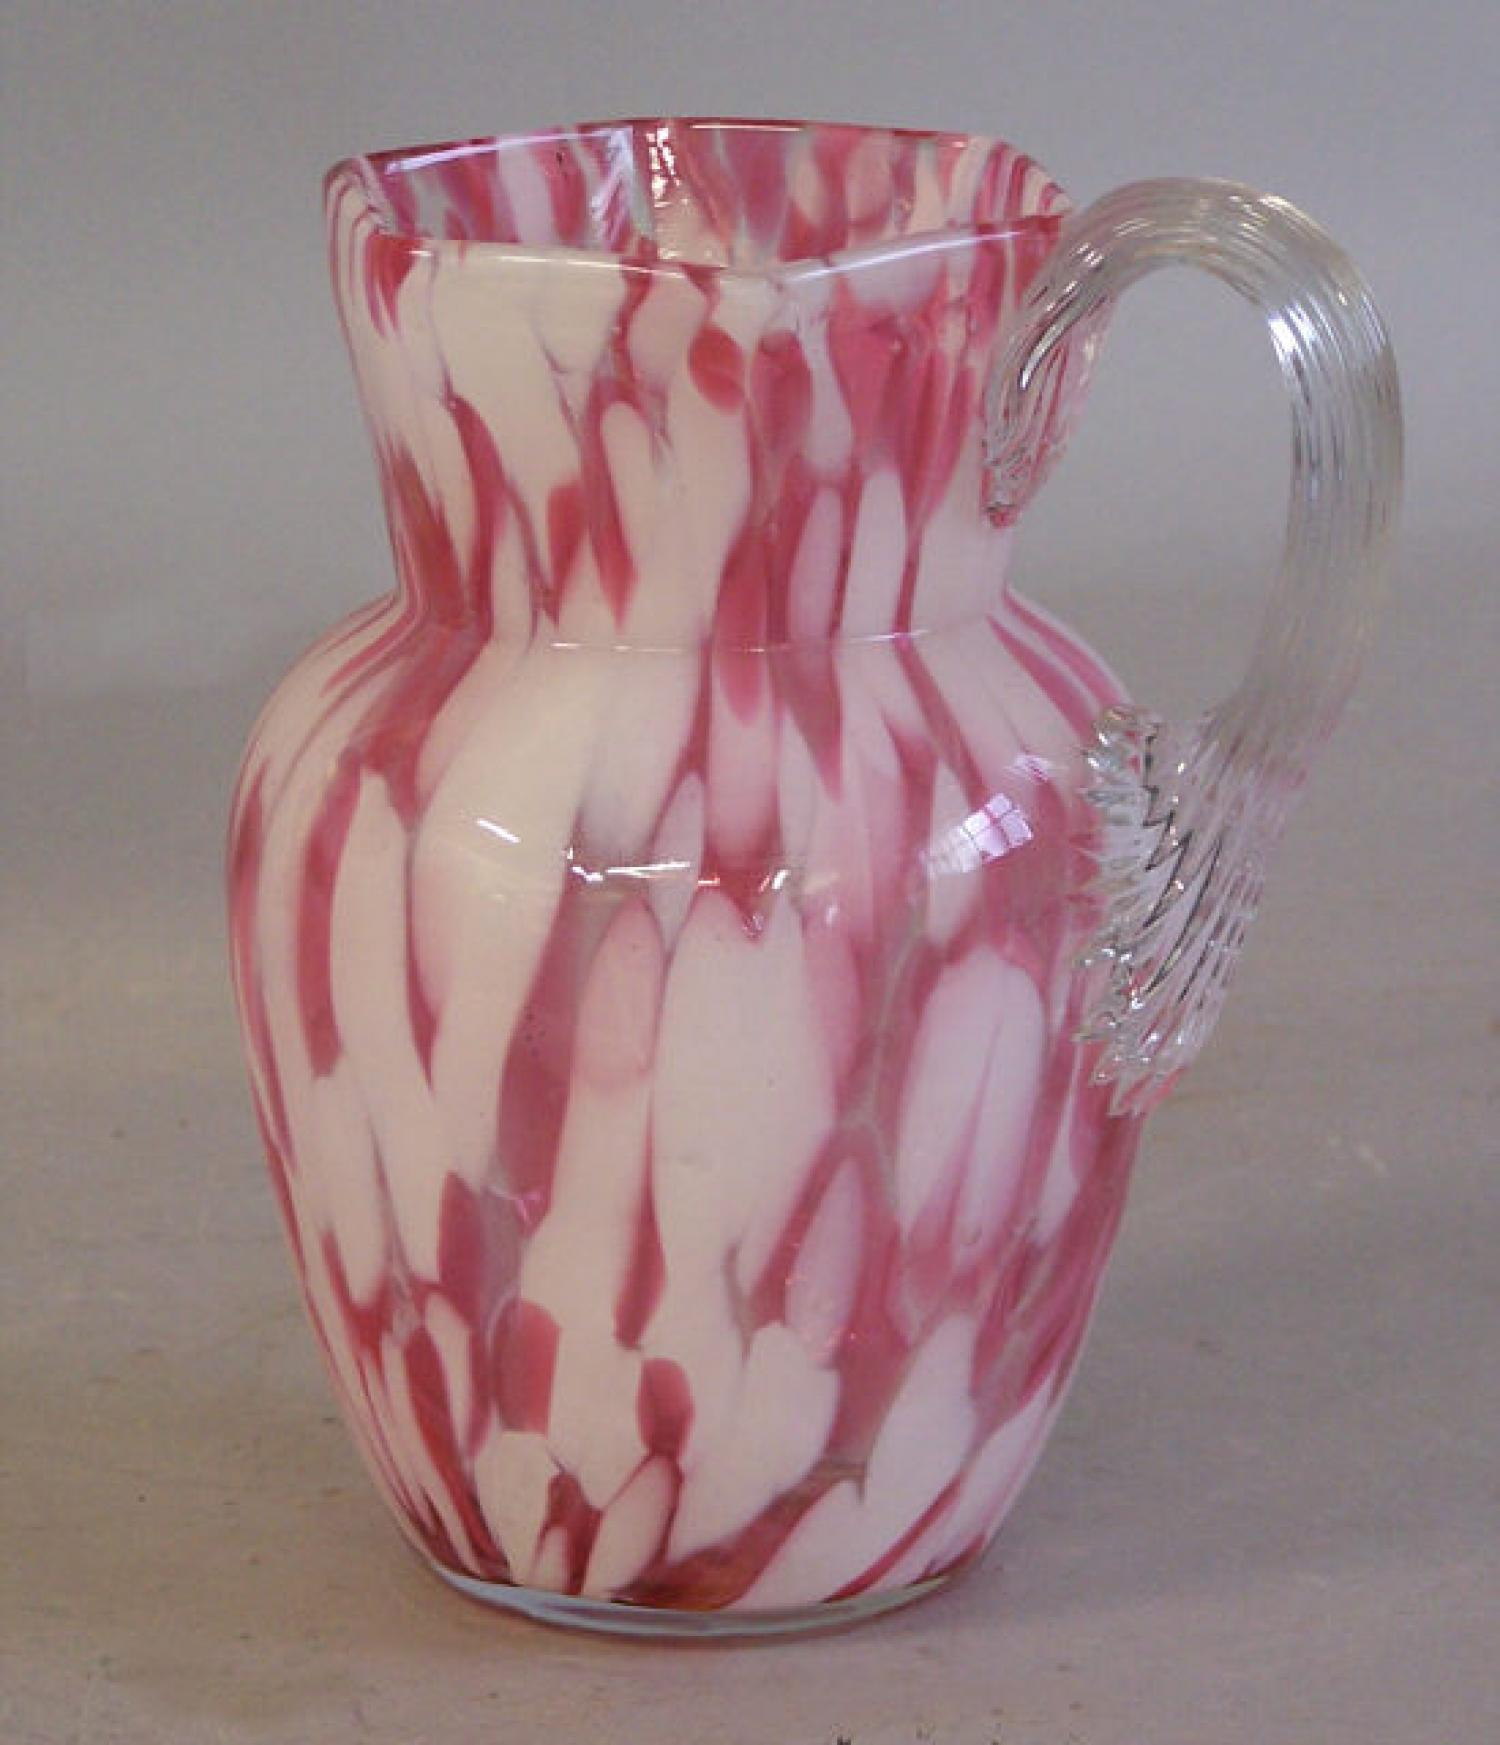 Spatterware blown glass pitcher c1880